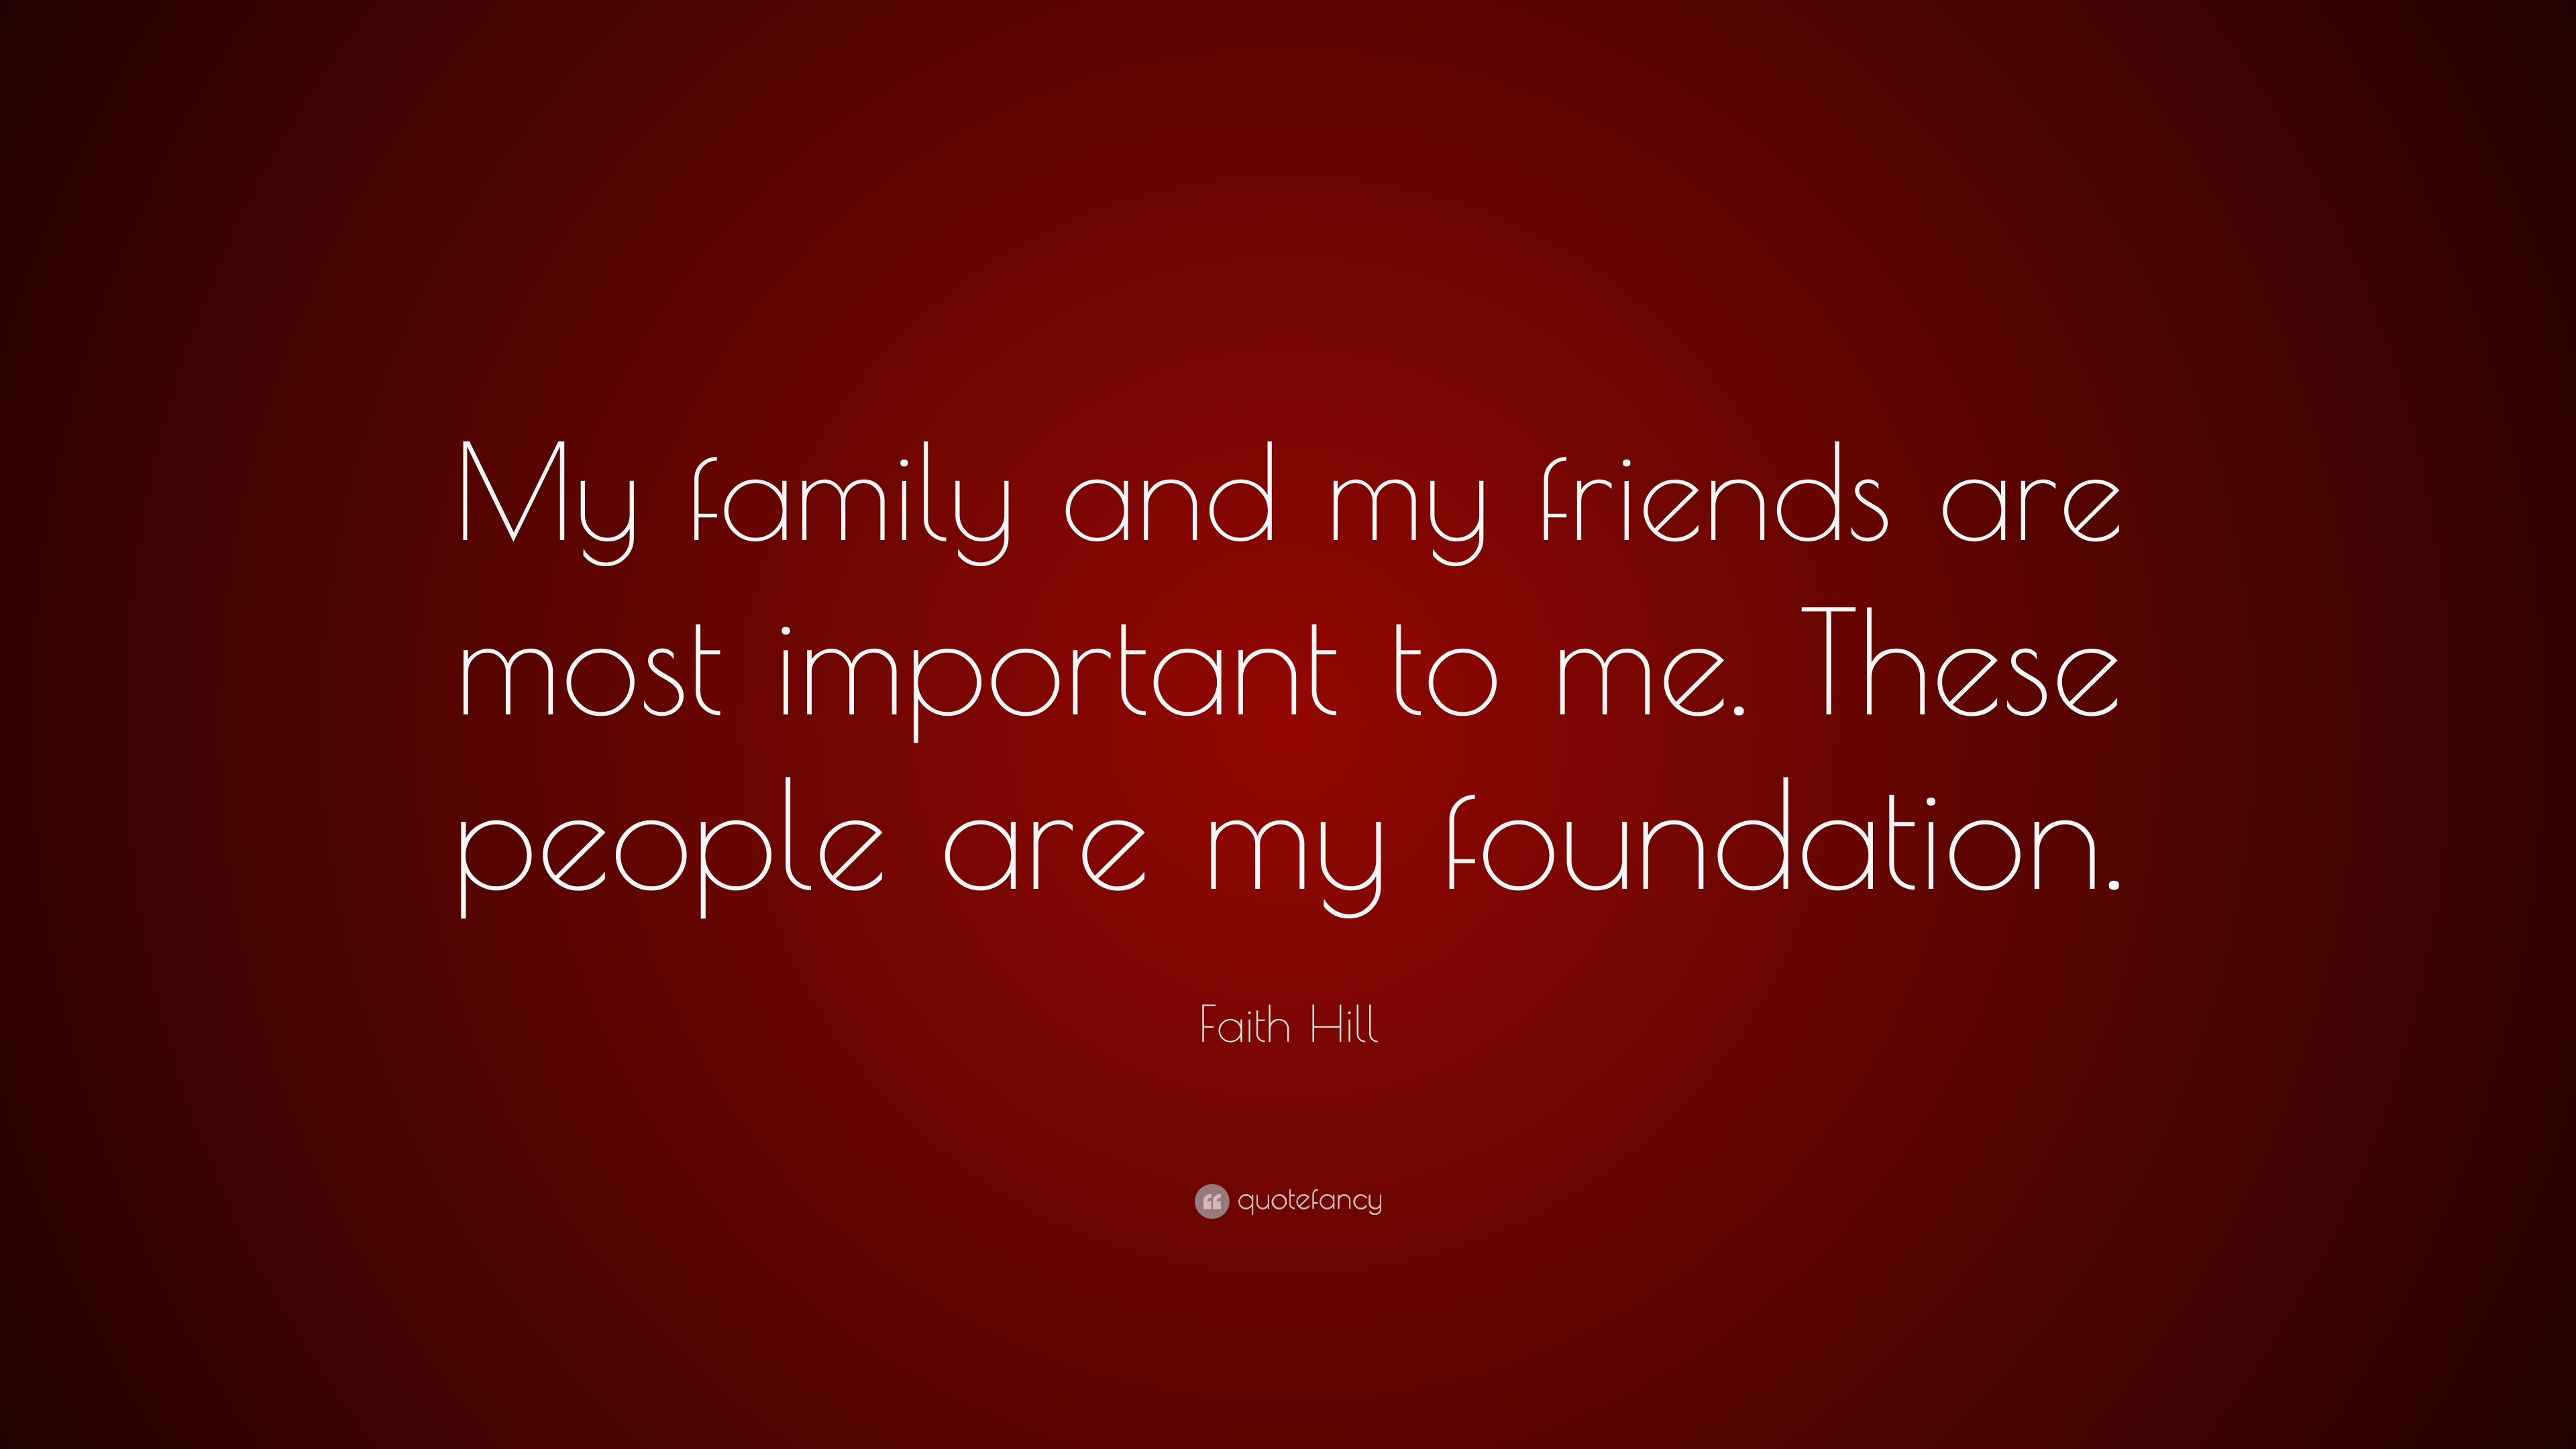 Faith Hill Quote My Family And My Friends Are Most Important To Me